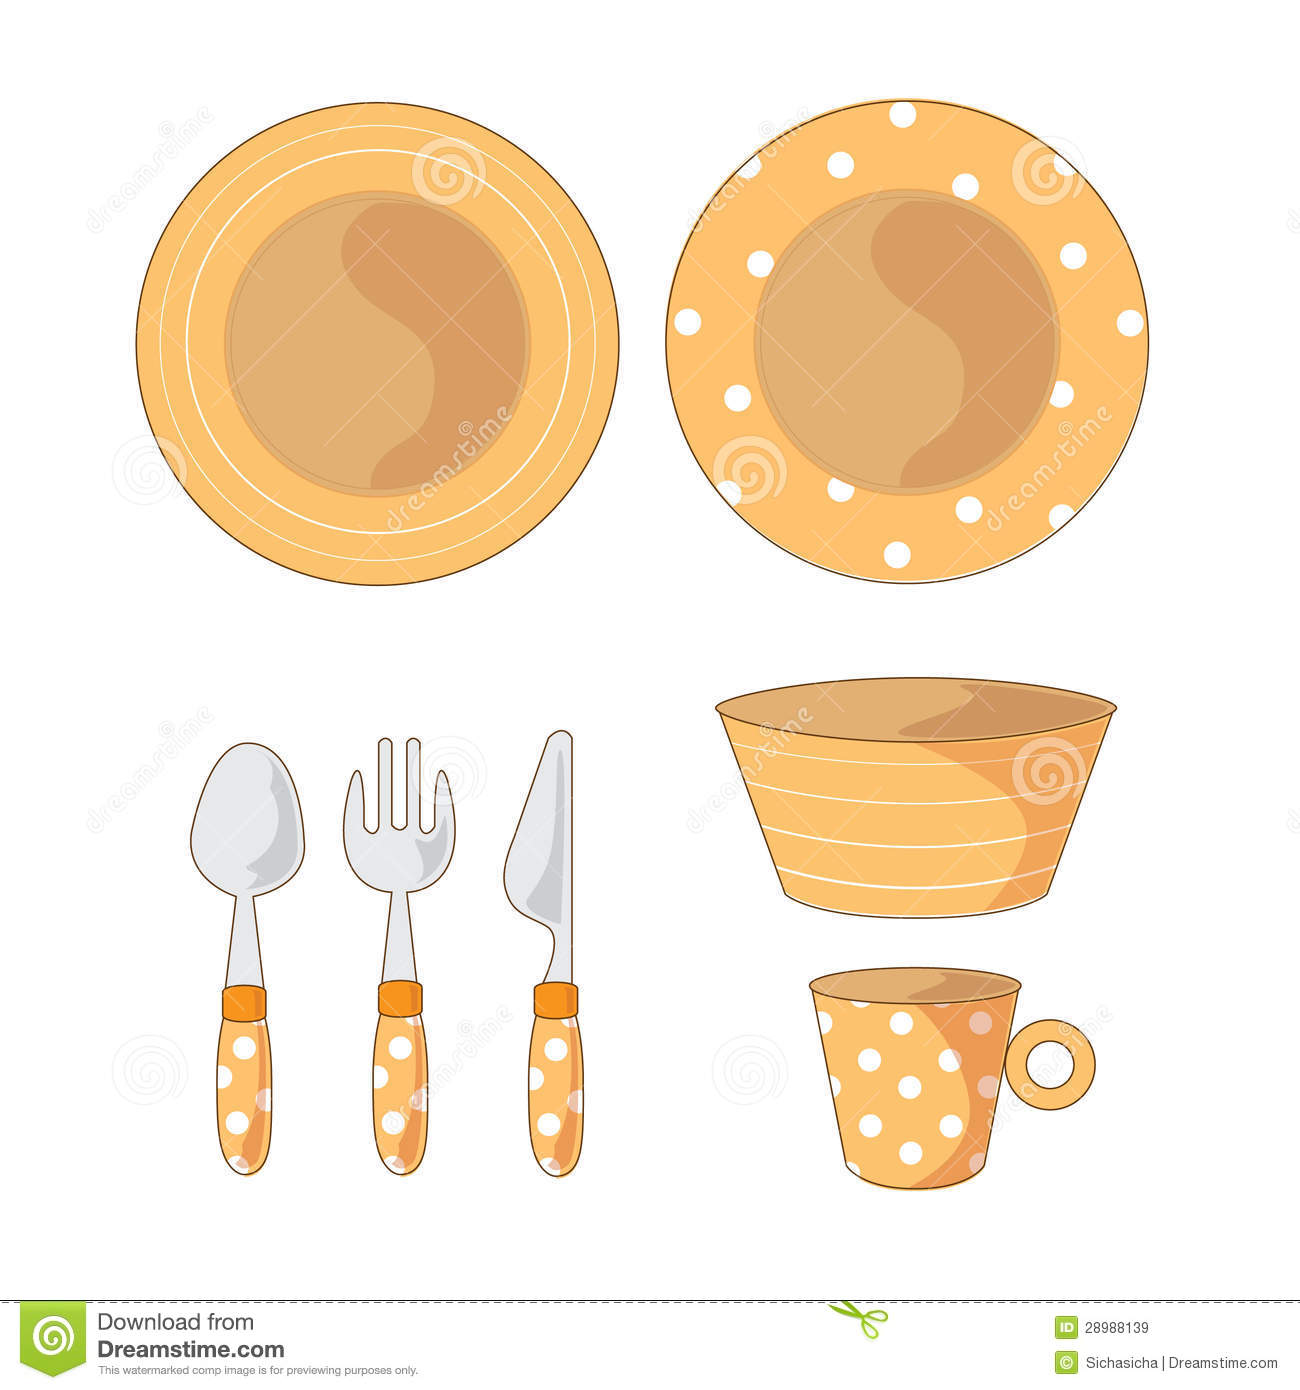 Tableware Objects Cartoon Illustration Royalty Free Stock Images.